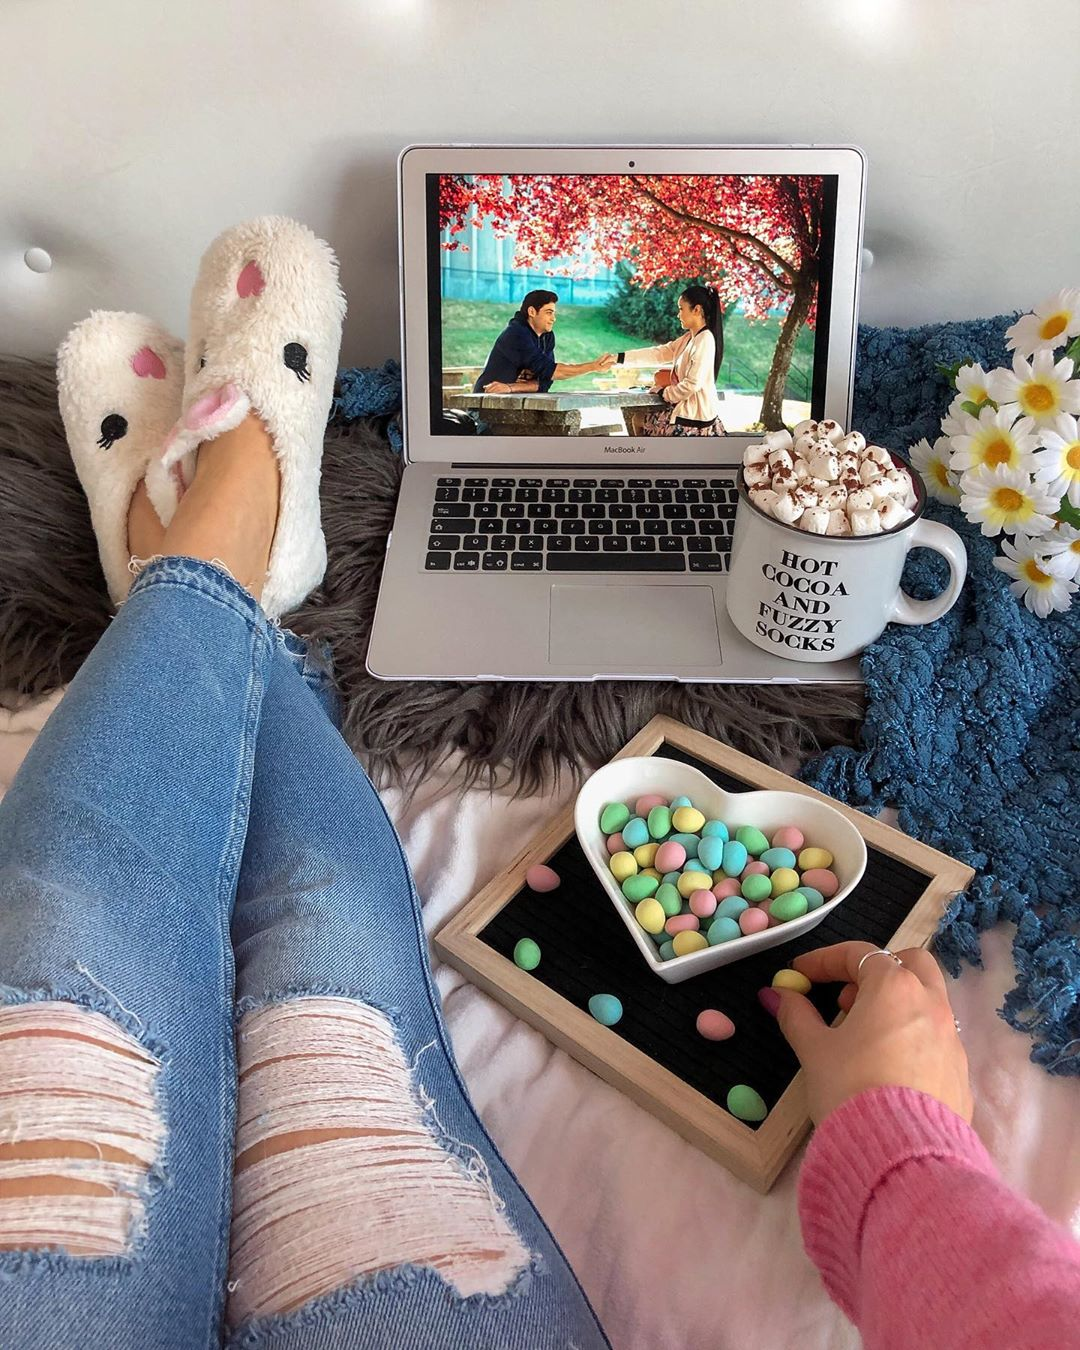 watching movies on laptop at home